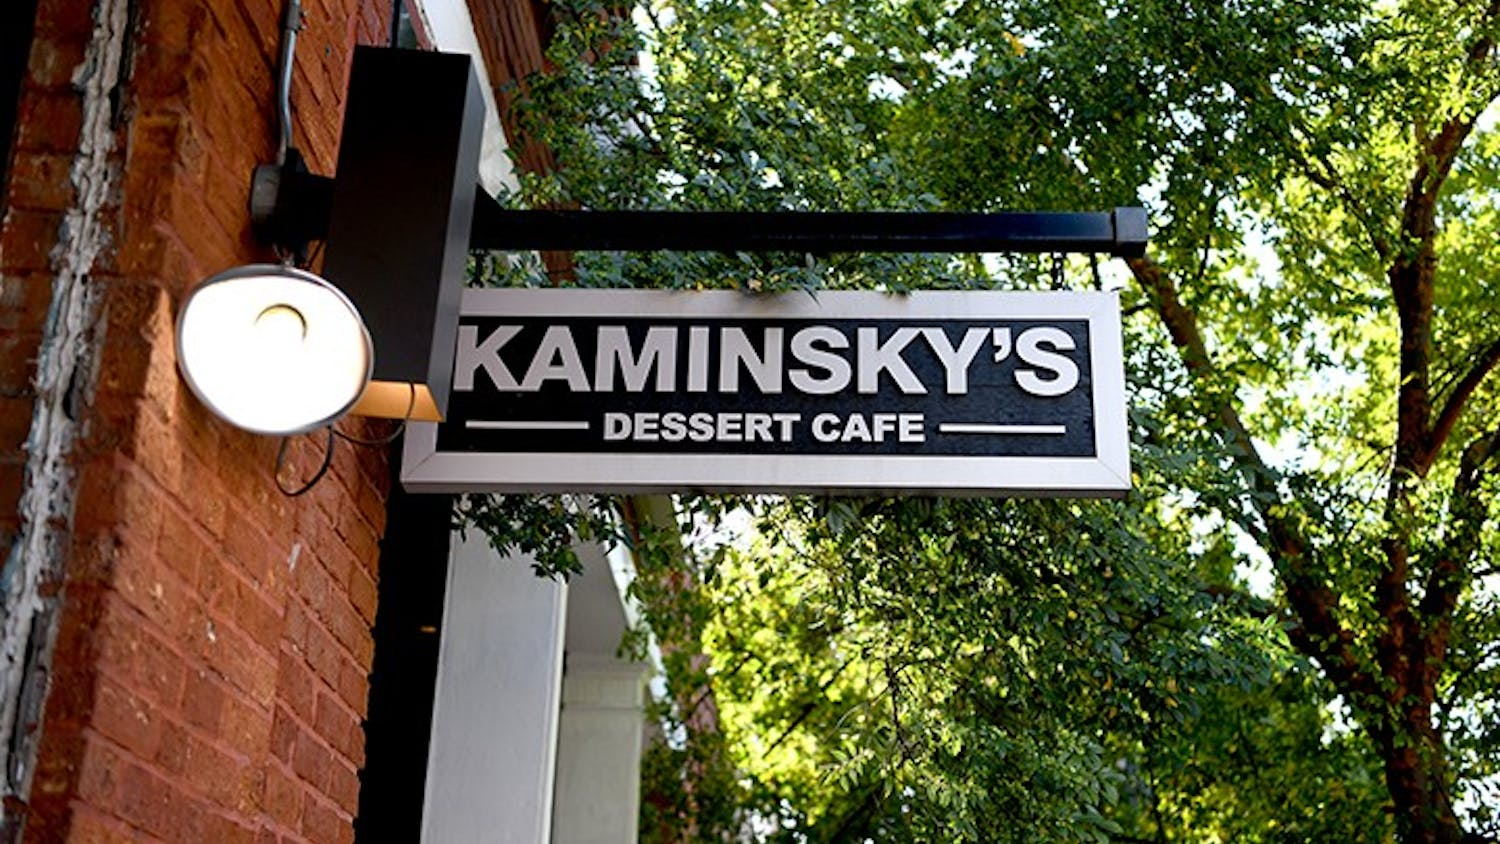 Kaminsky's Dessert Cafe is a popular spot for students in The Vista.